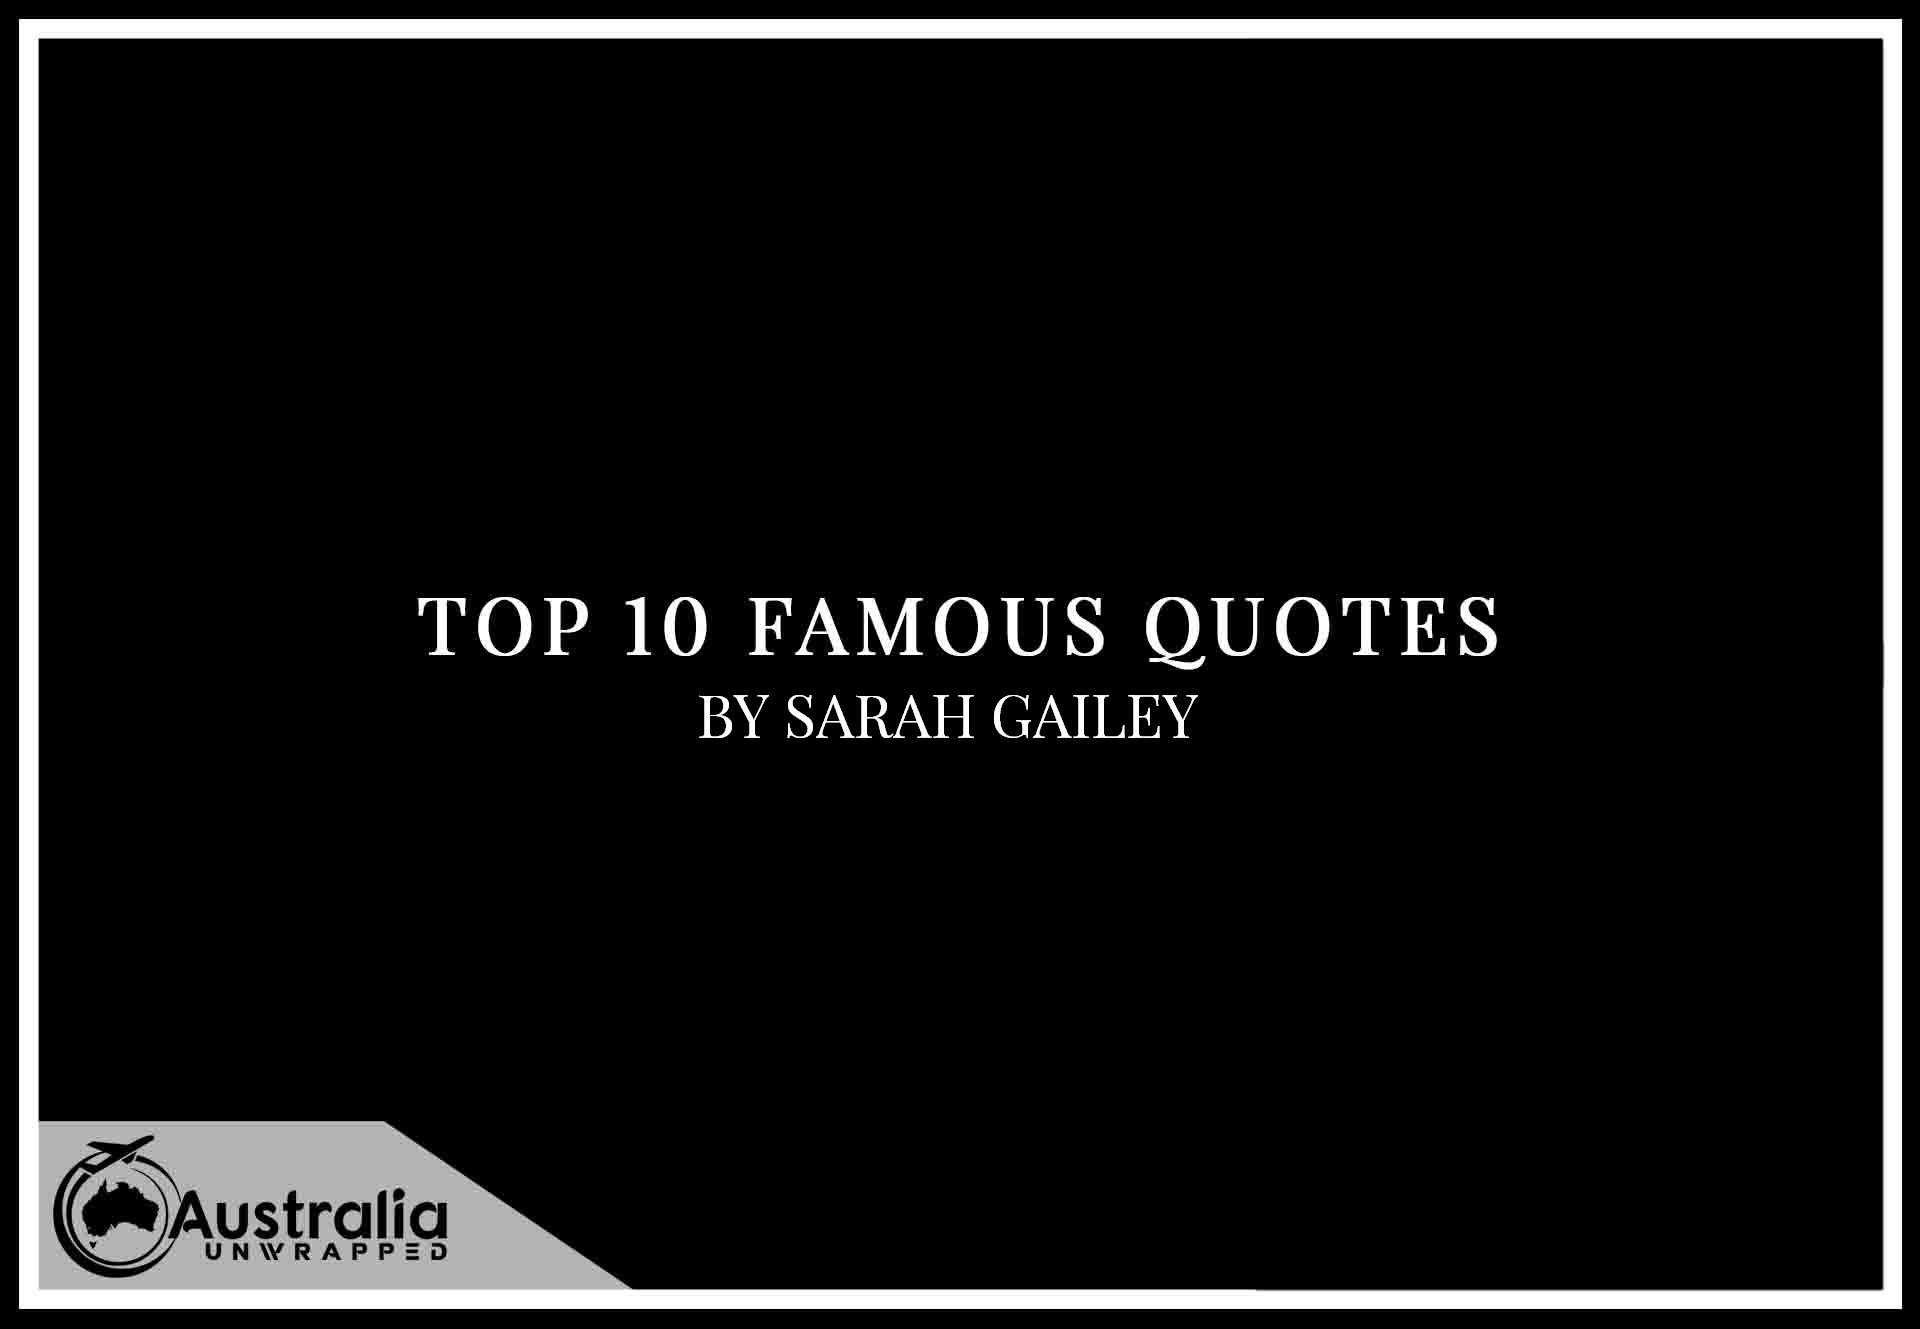 Top 10 Famous Quotes by Author Sarah Gailey